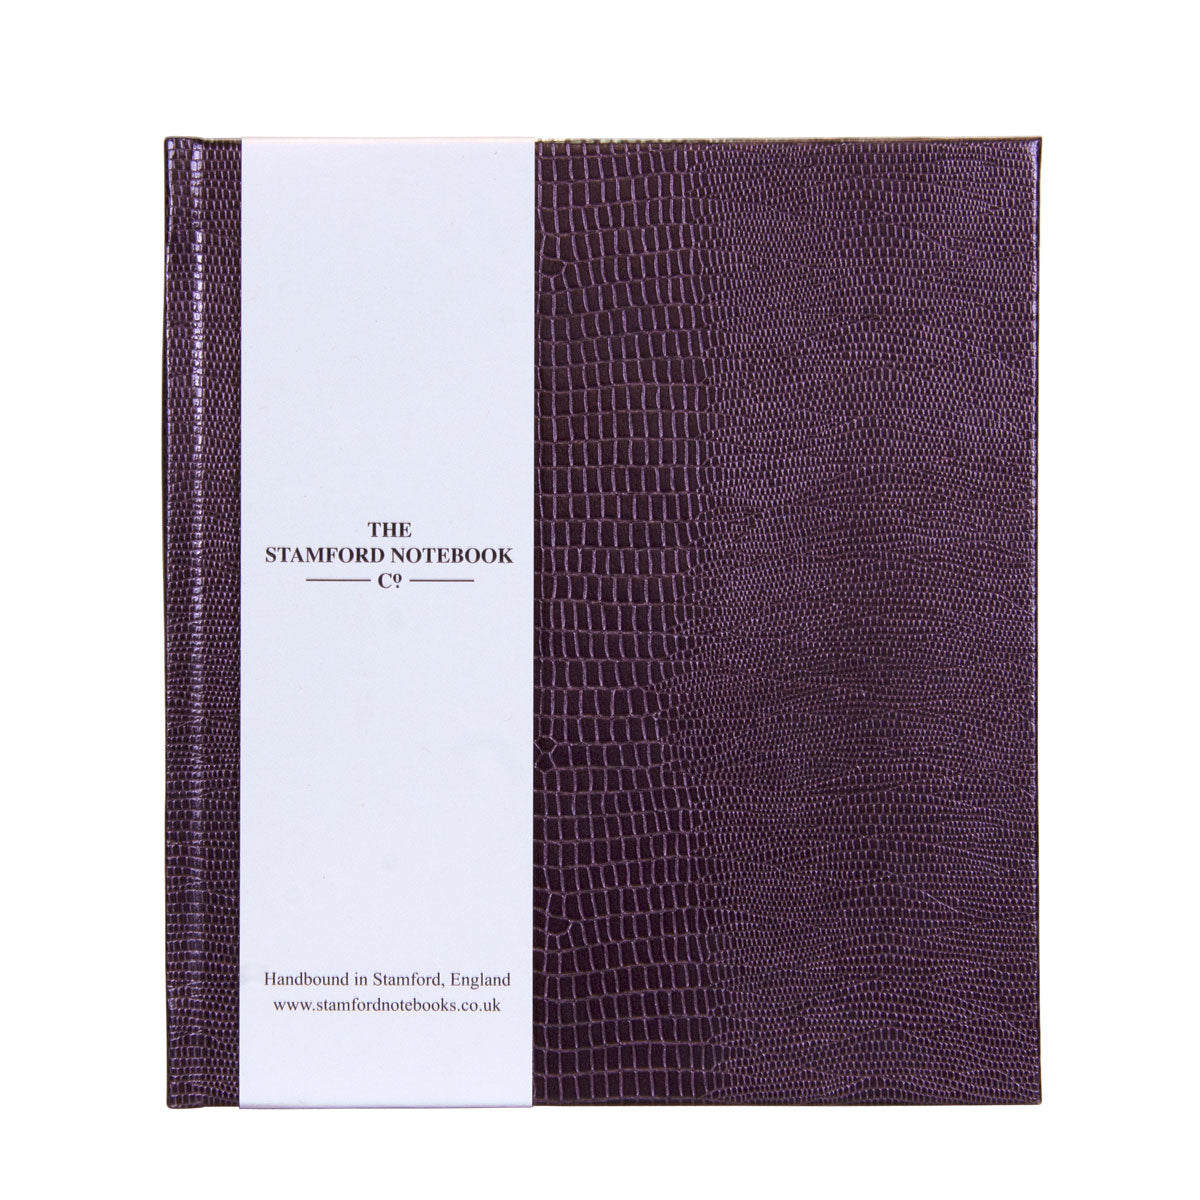 beetle wing iguana embossed handbound notebook